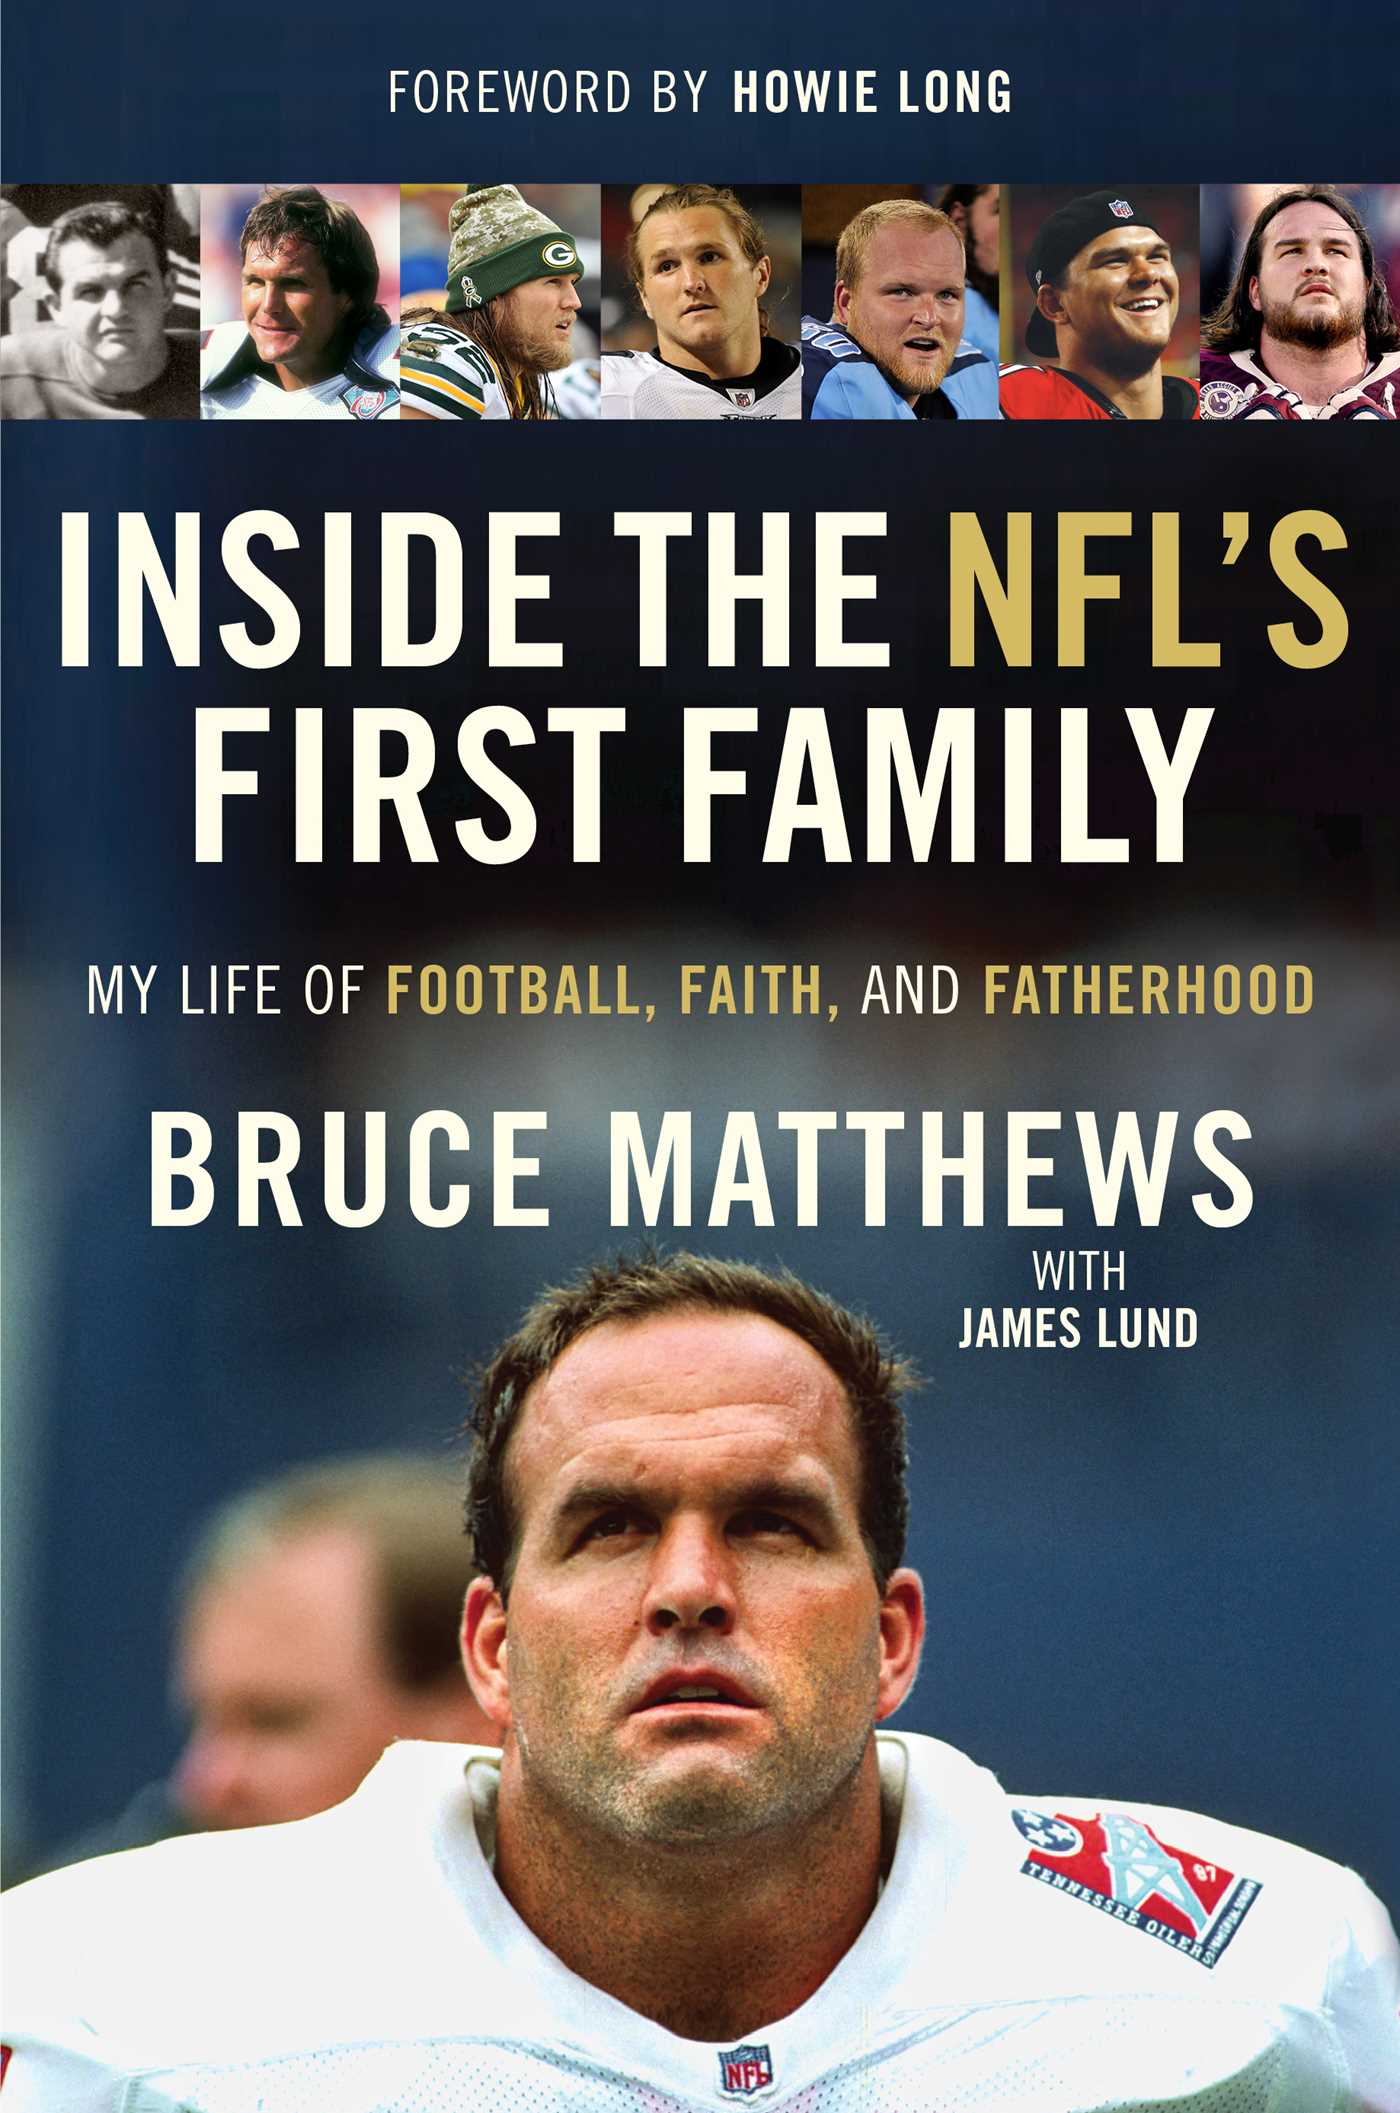 Inside the nfls first family 9781501144783 hr